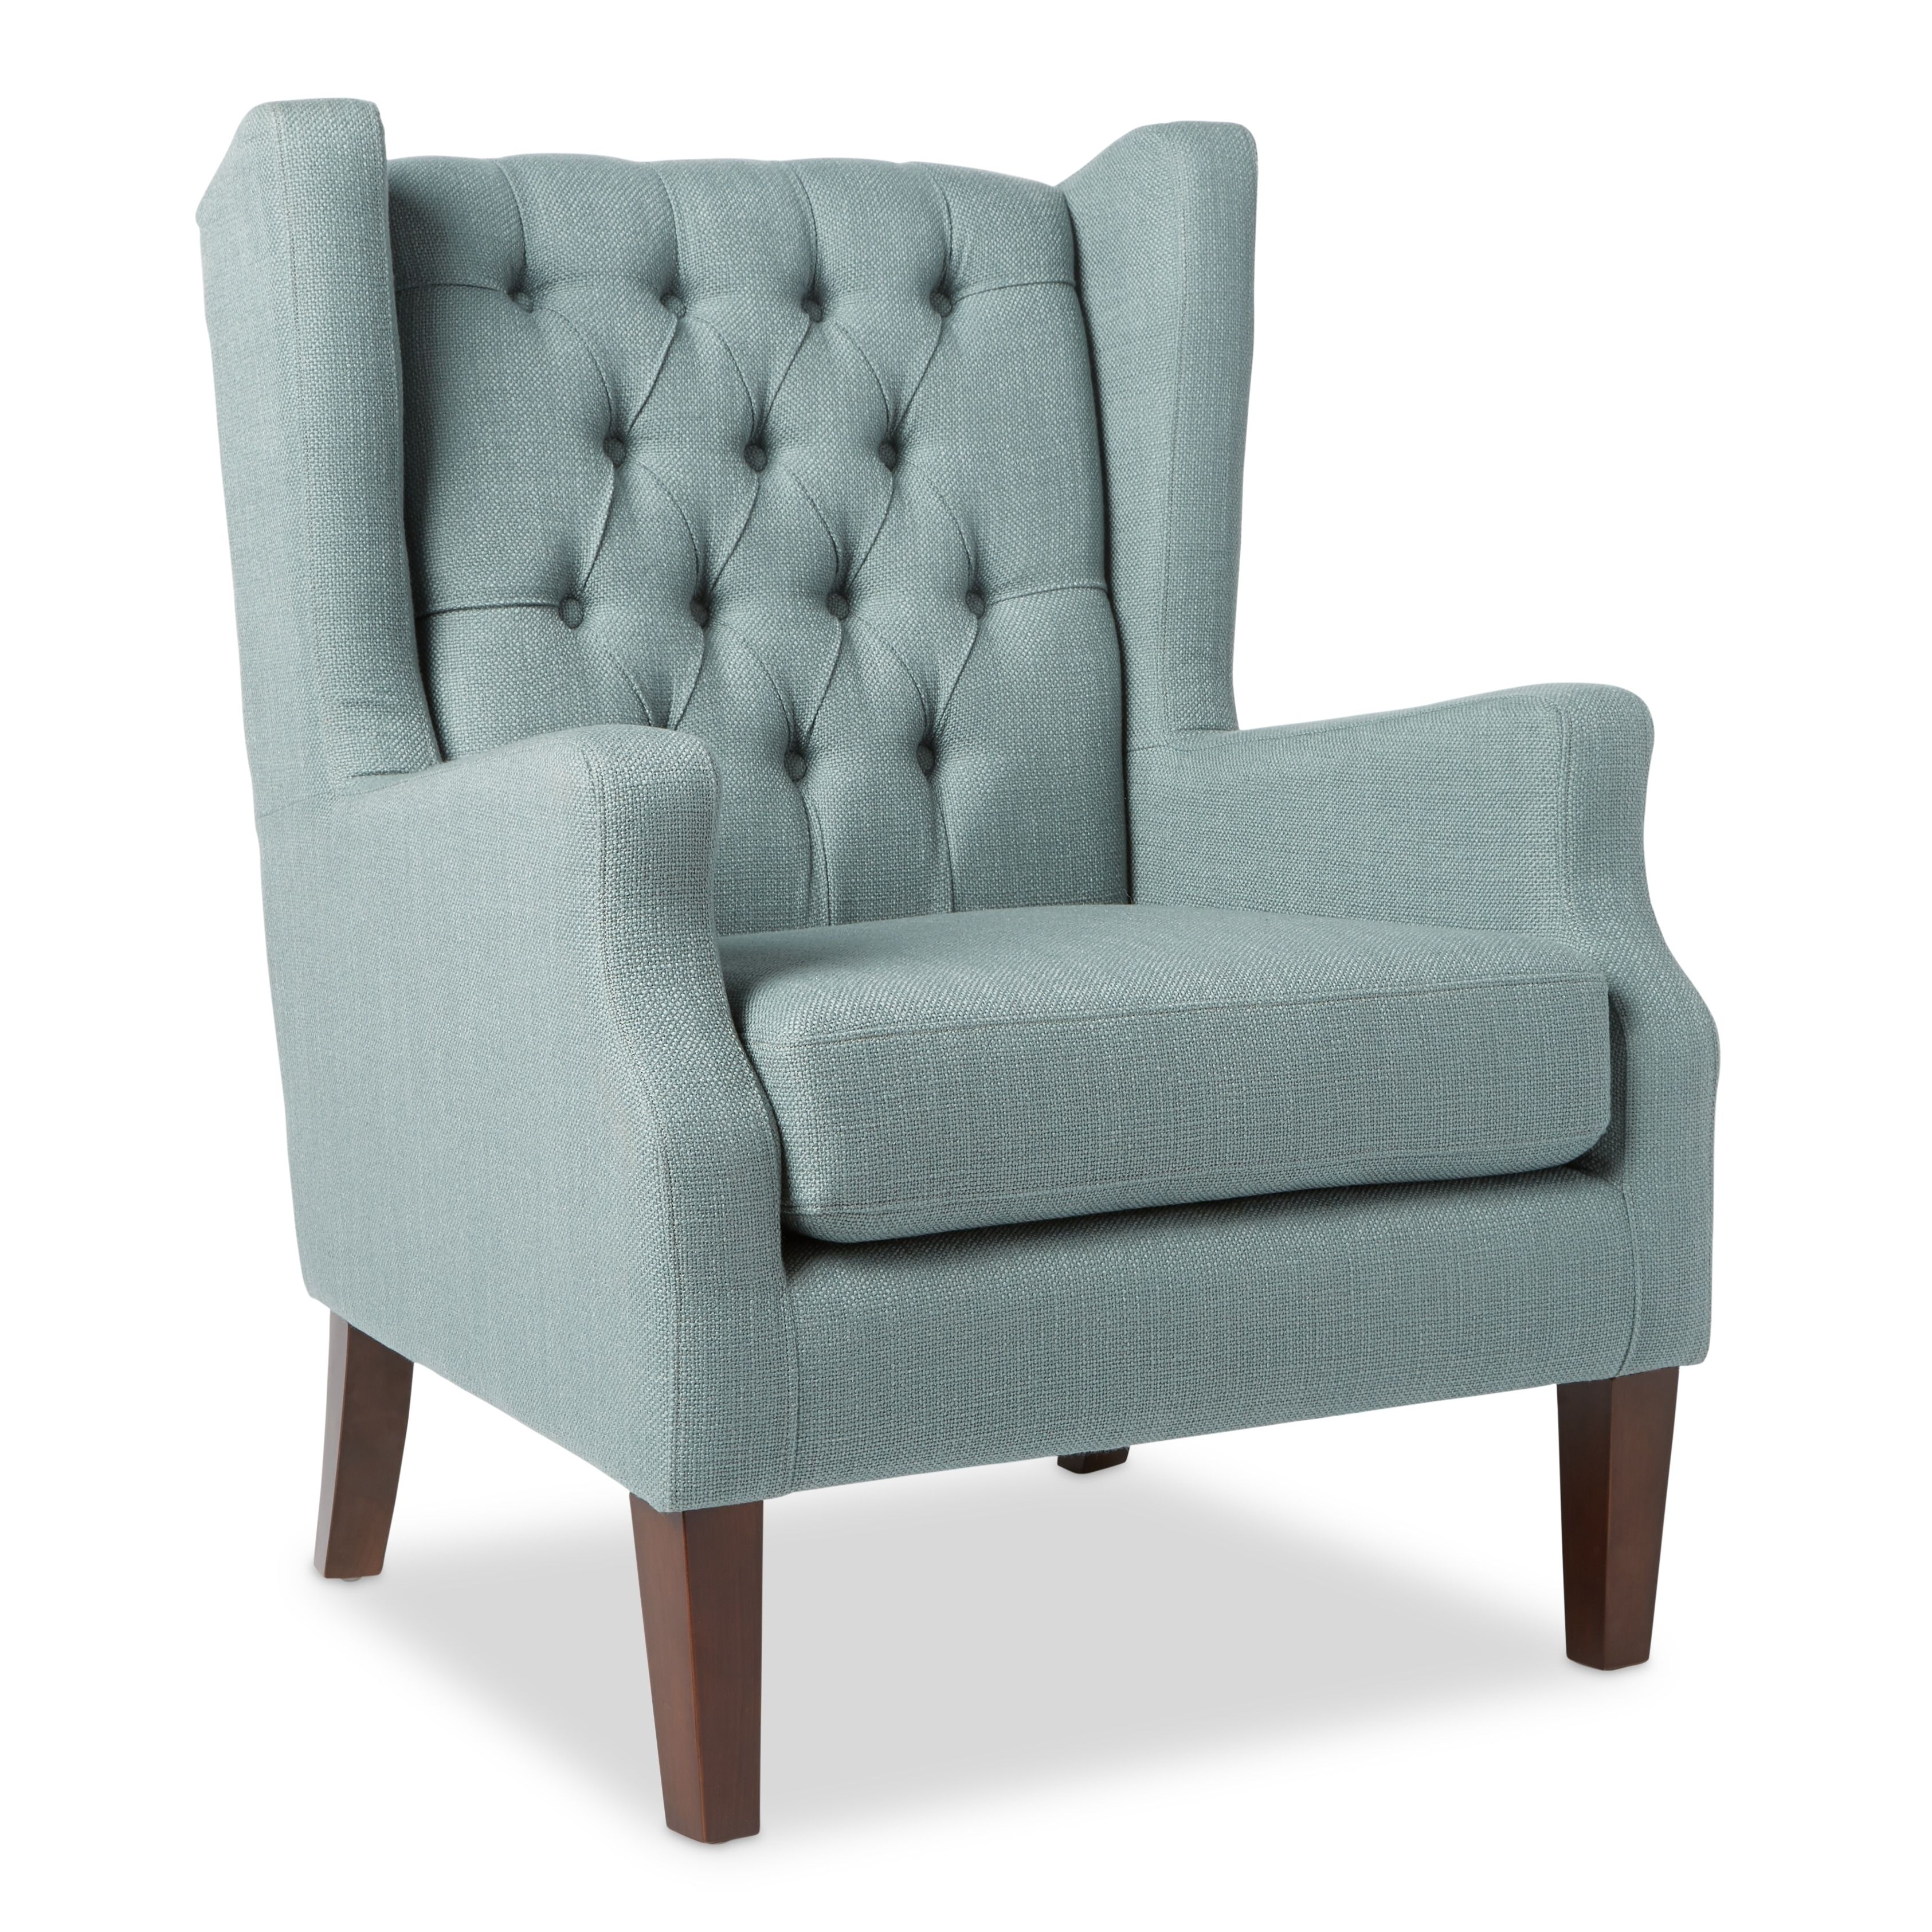 Green channel back bretta chair by world market products